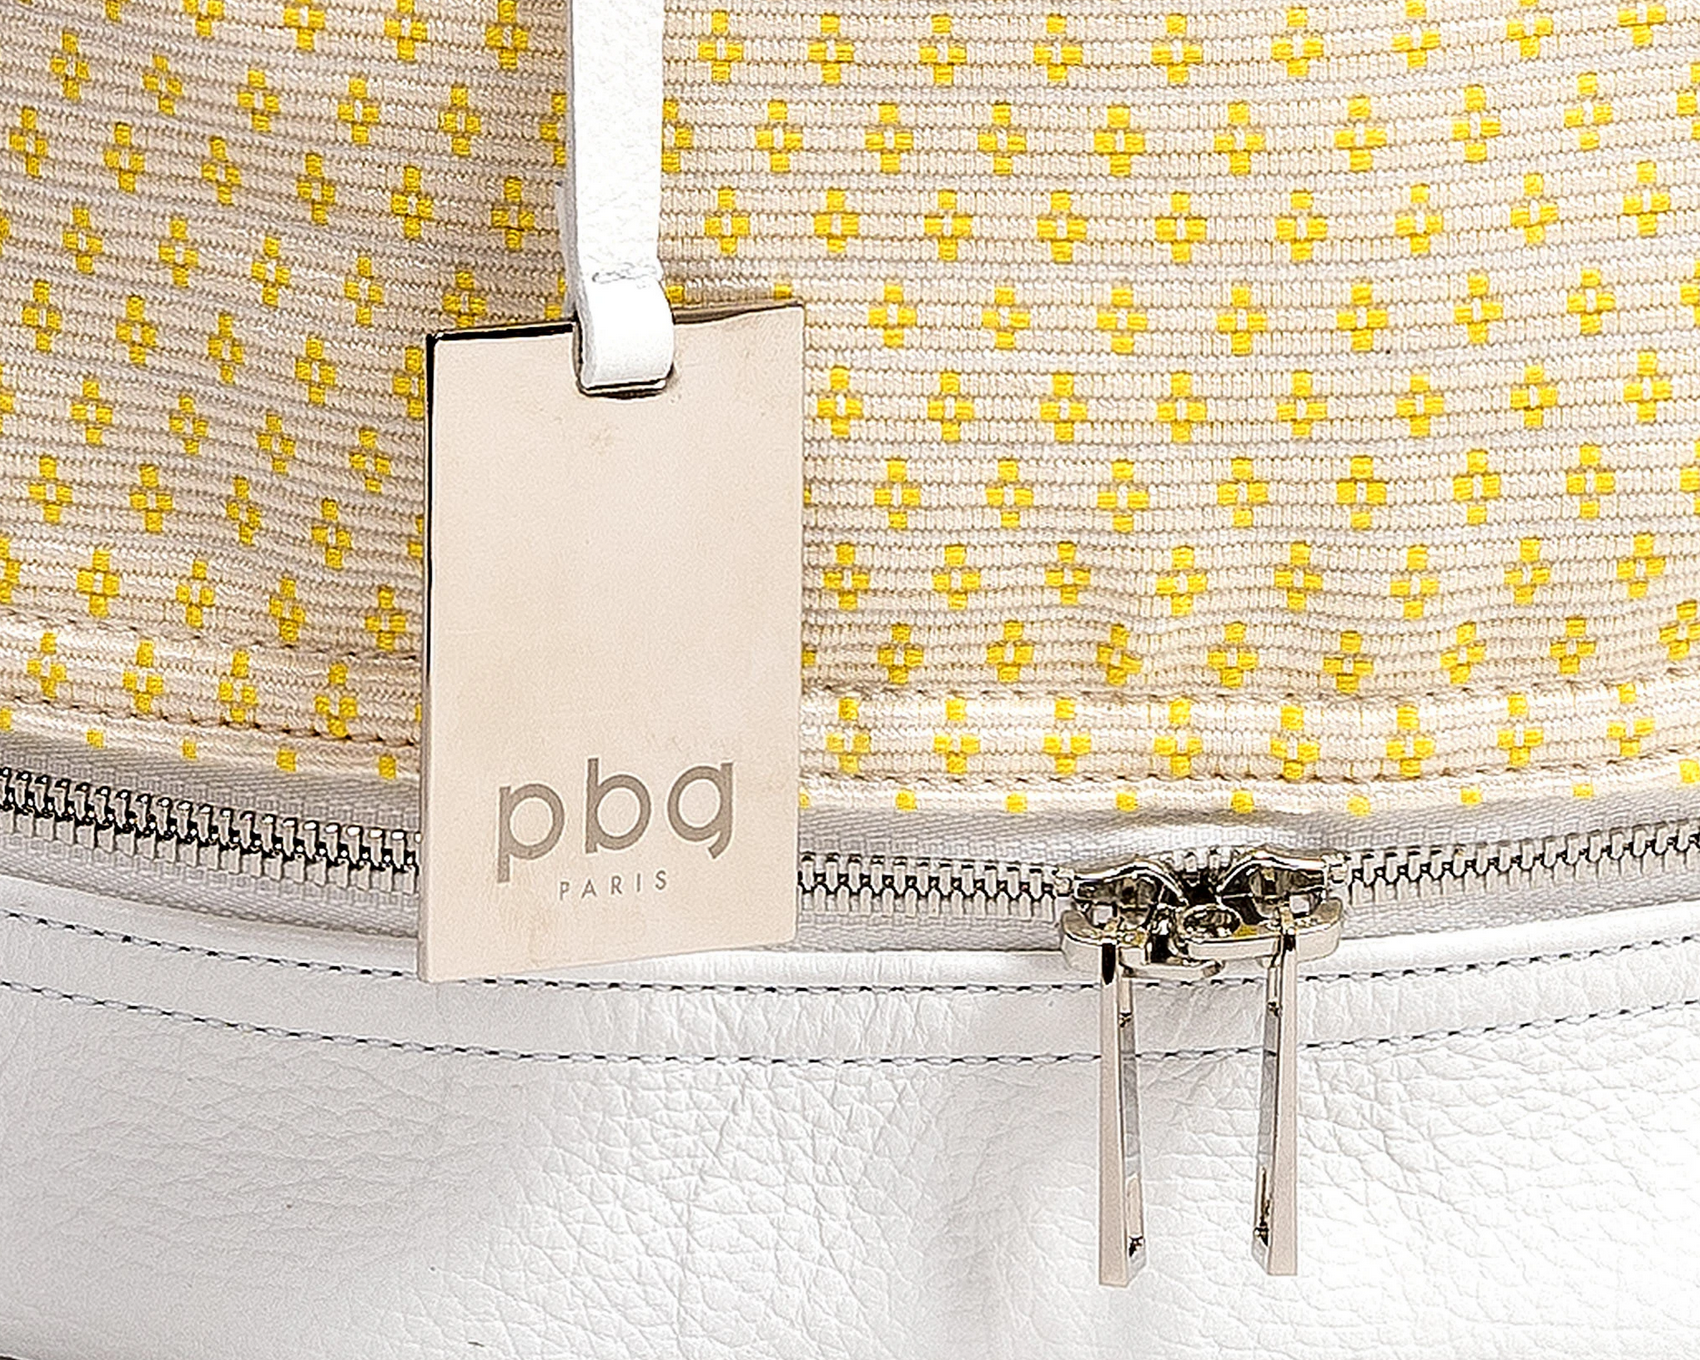 PBG PARIS Bags Of Hope Backpack, White